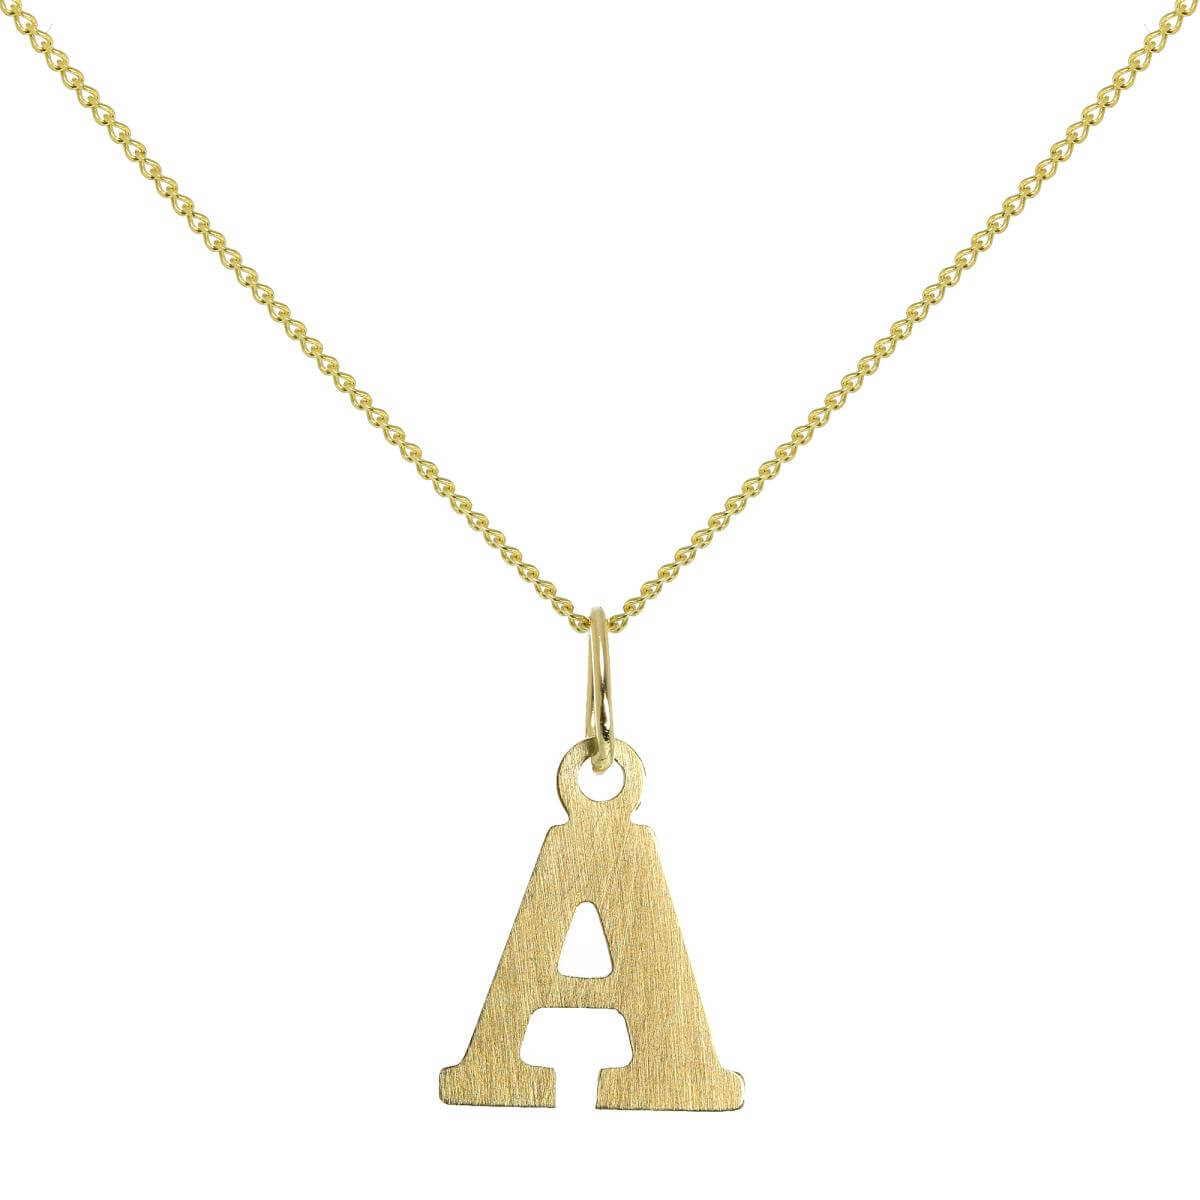 Lightweight 9ct Gold Initial Letter A Charm - 16 Inches